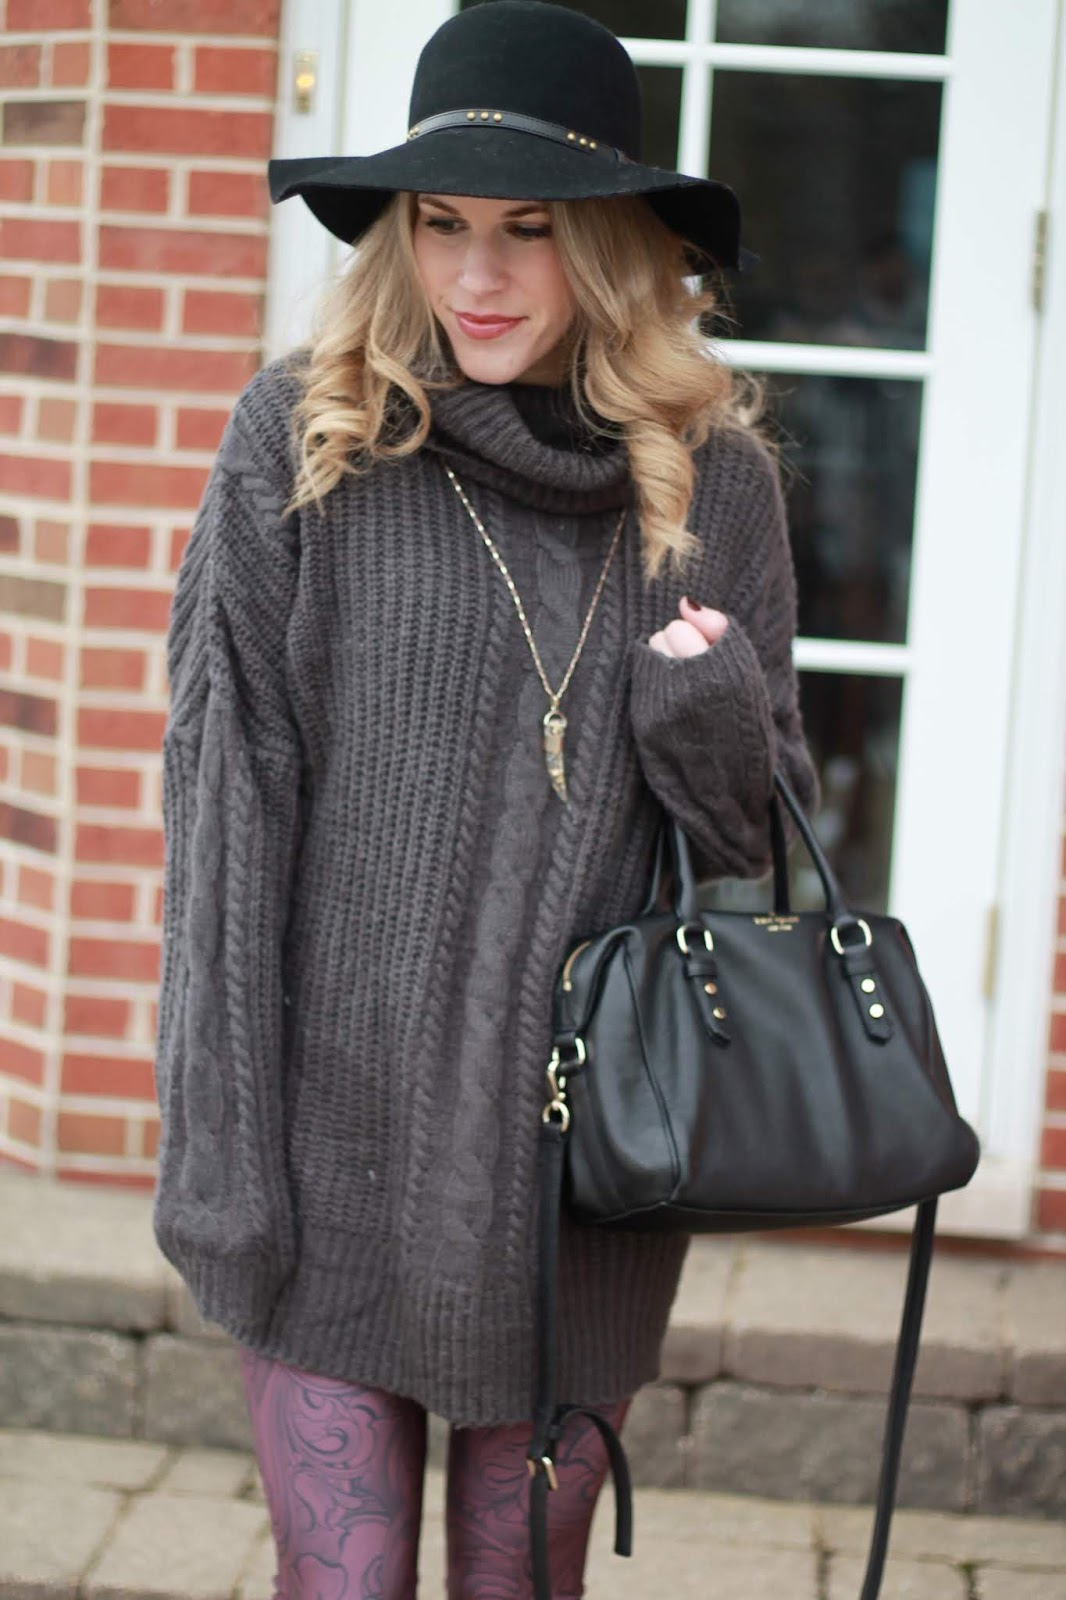 burgundy printed leggings, tunic sweatshirt, taupe slip ons, grey cable knit tunic, black booties, kate spade black crossbody bag, black floppy hat